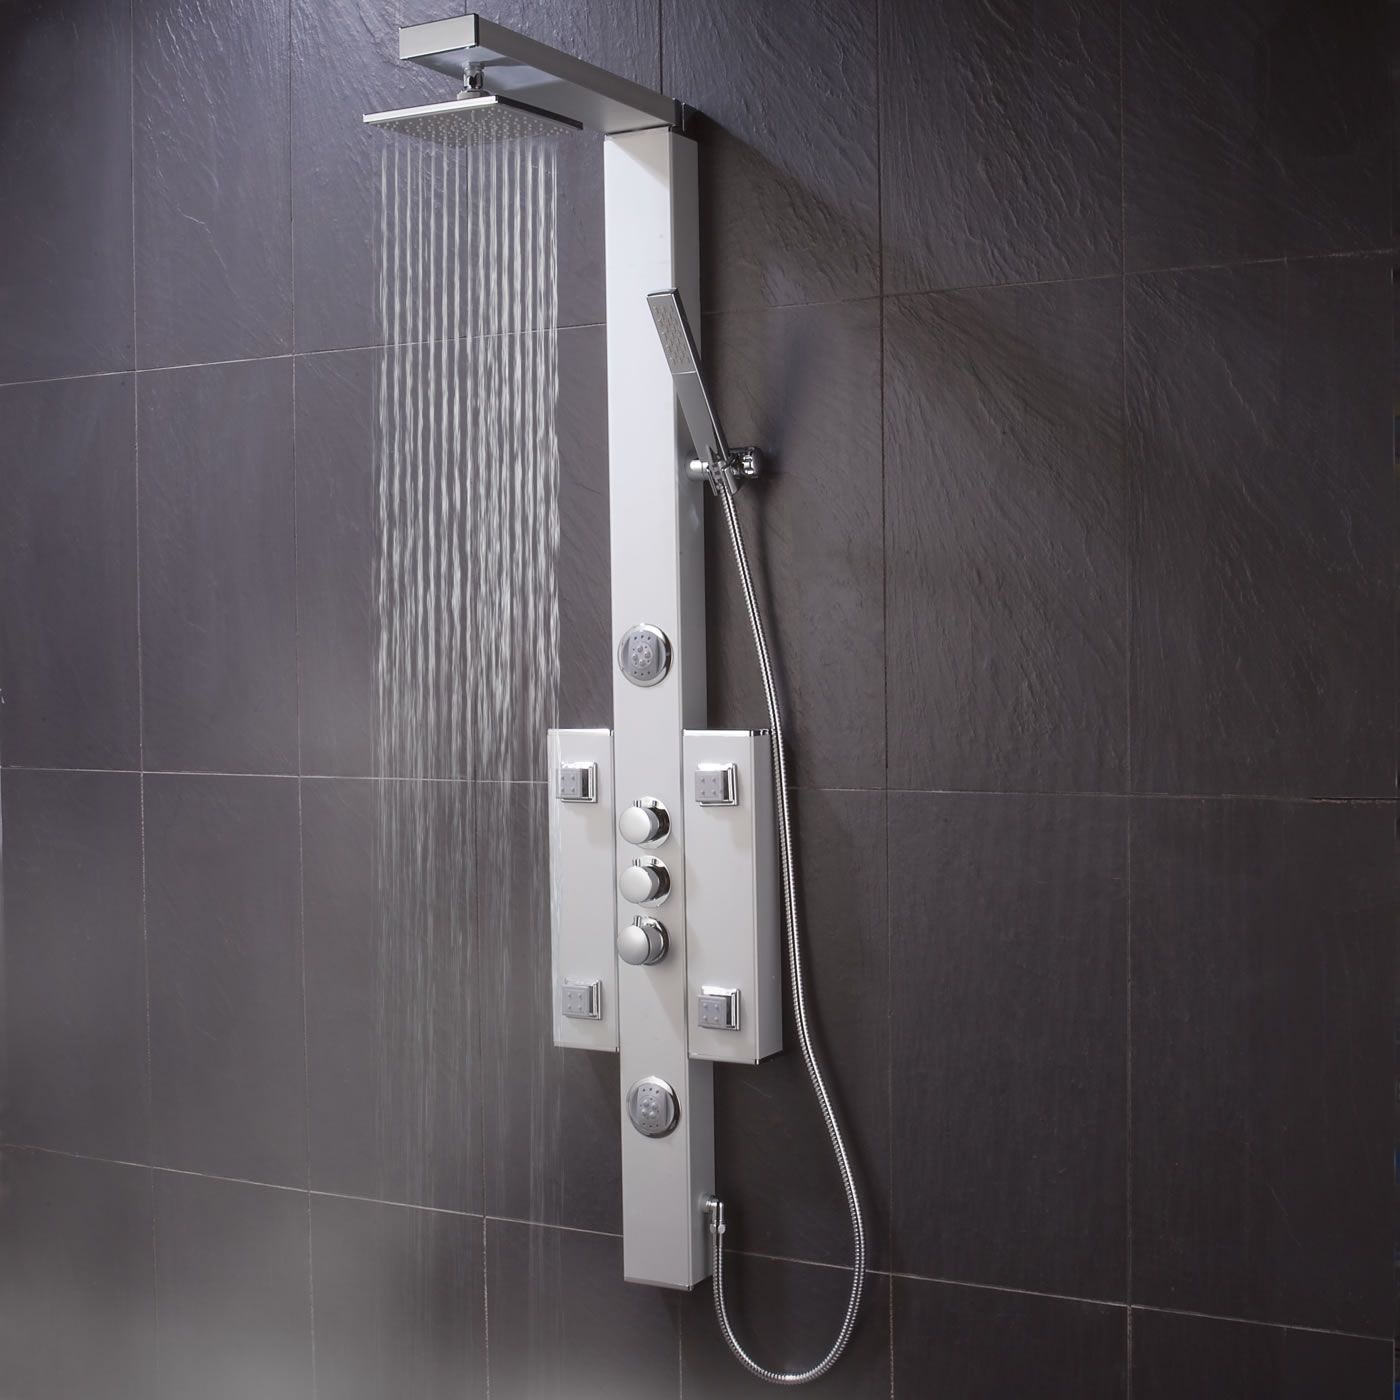 Thermostatic Square Shower Panel Tower System 3 Outlets Overhead Handset  And Body Sprays